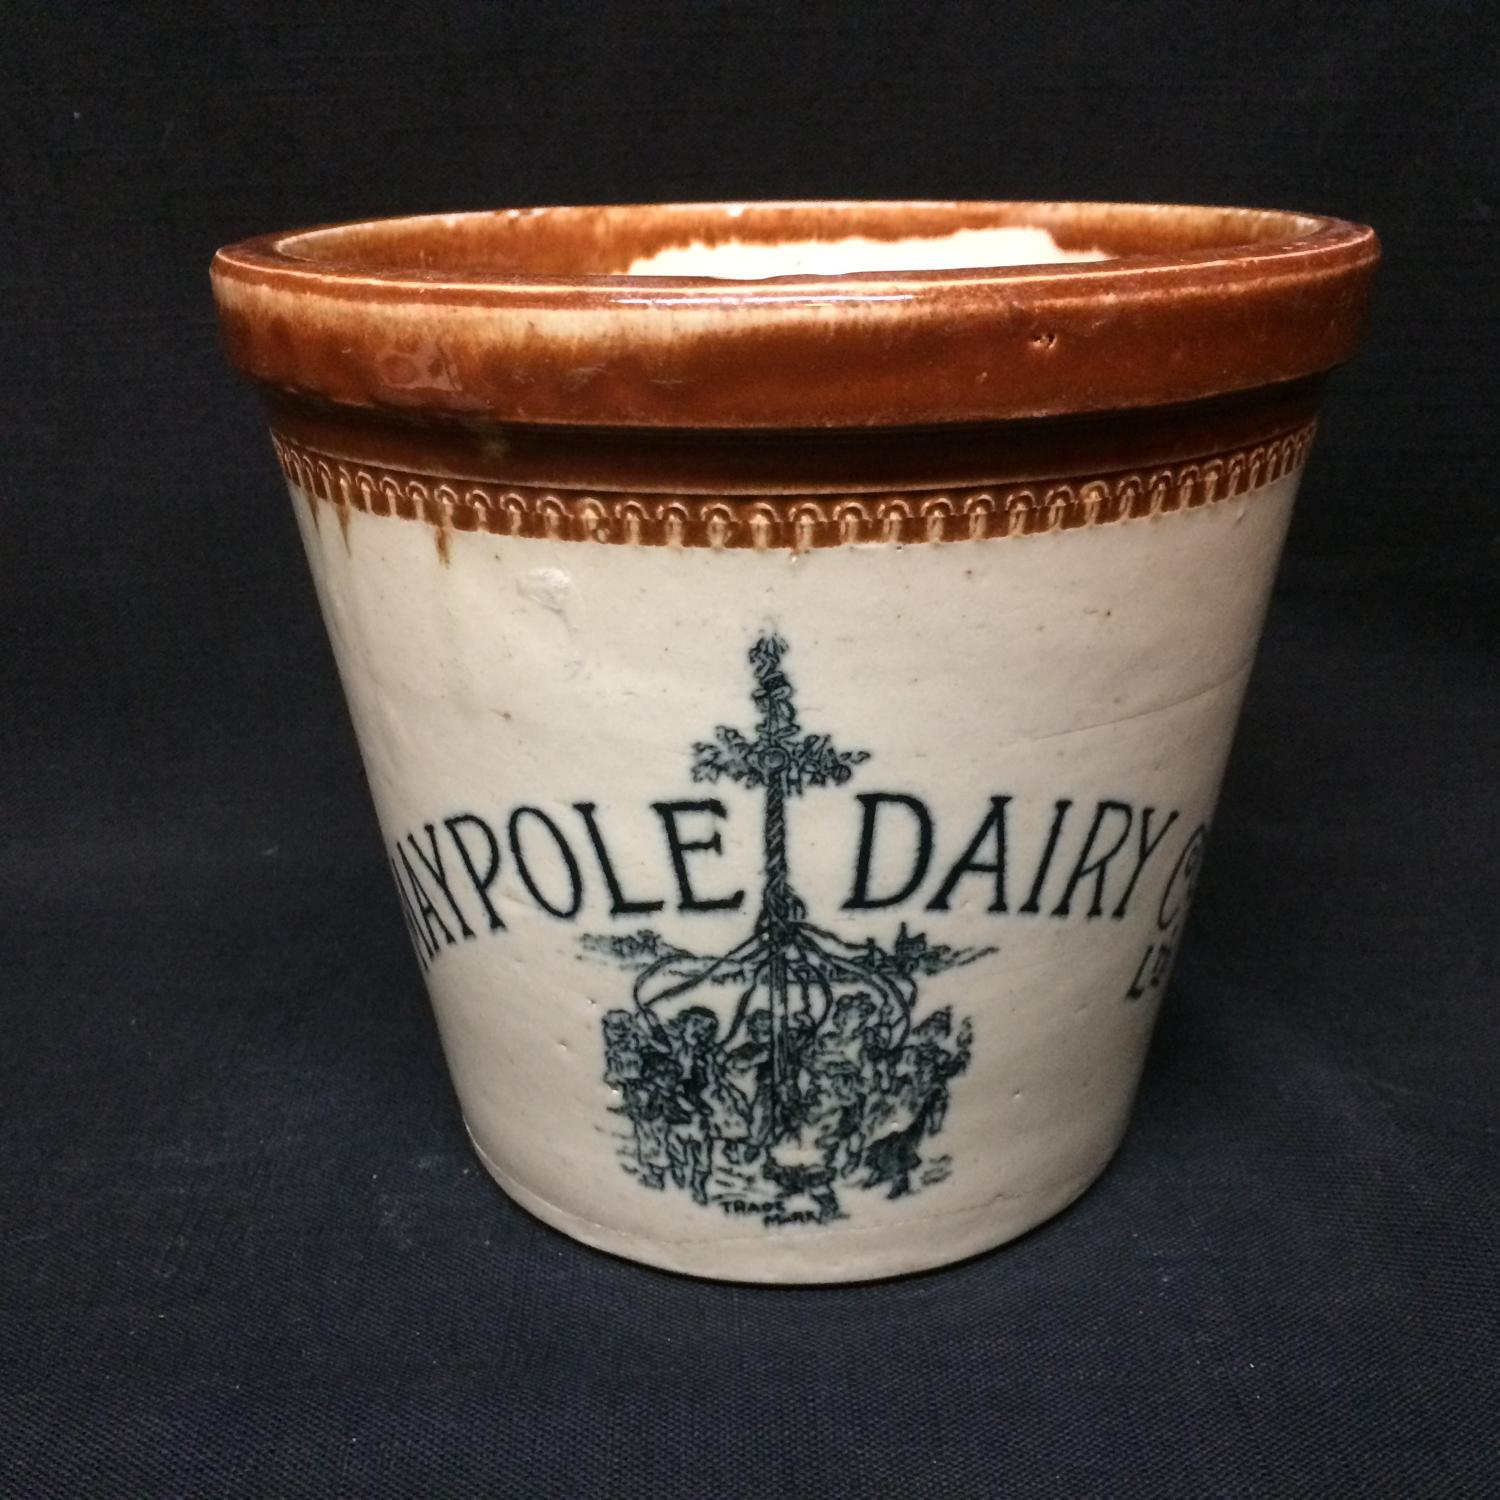 1920 ~ RARE PICTORIAL 4 lb MAYPOLE DAIRY Co BUTTER CROCK